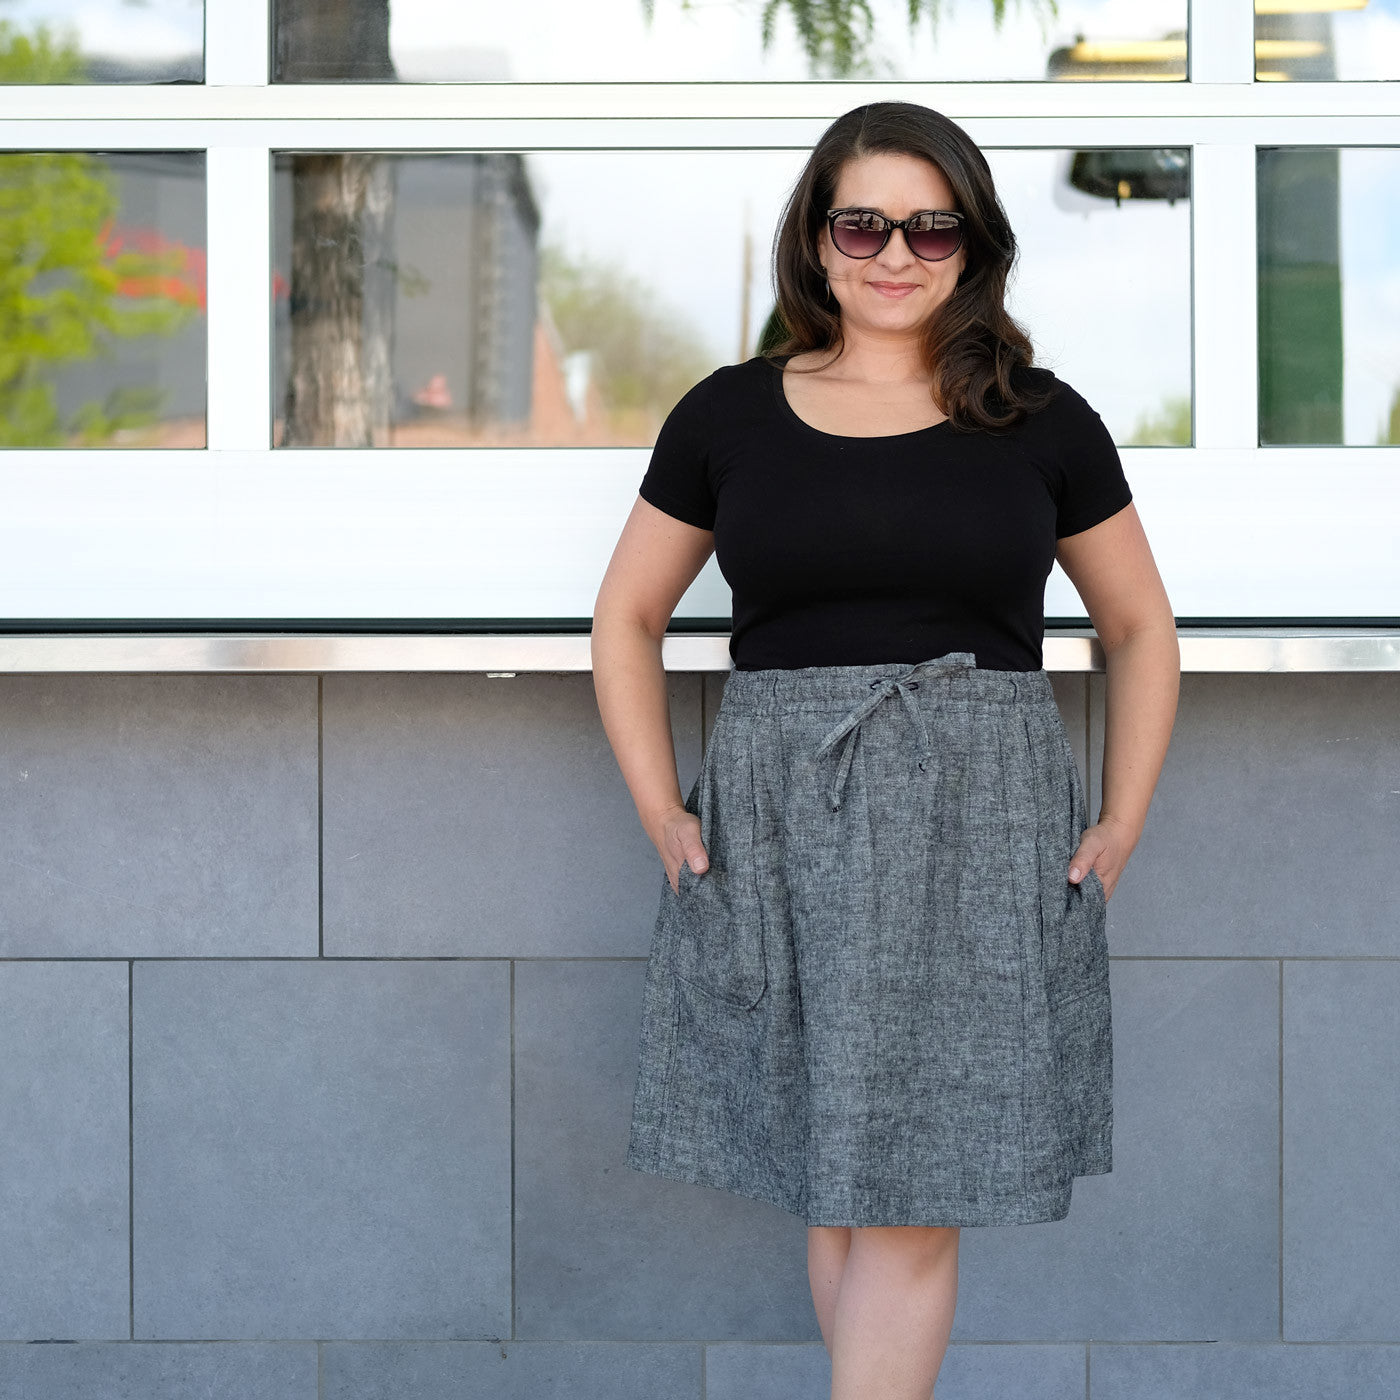 Tiffani in her Goji skirt made from Brussels Washer Yarn-dyed Black